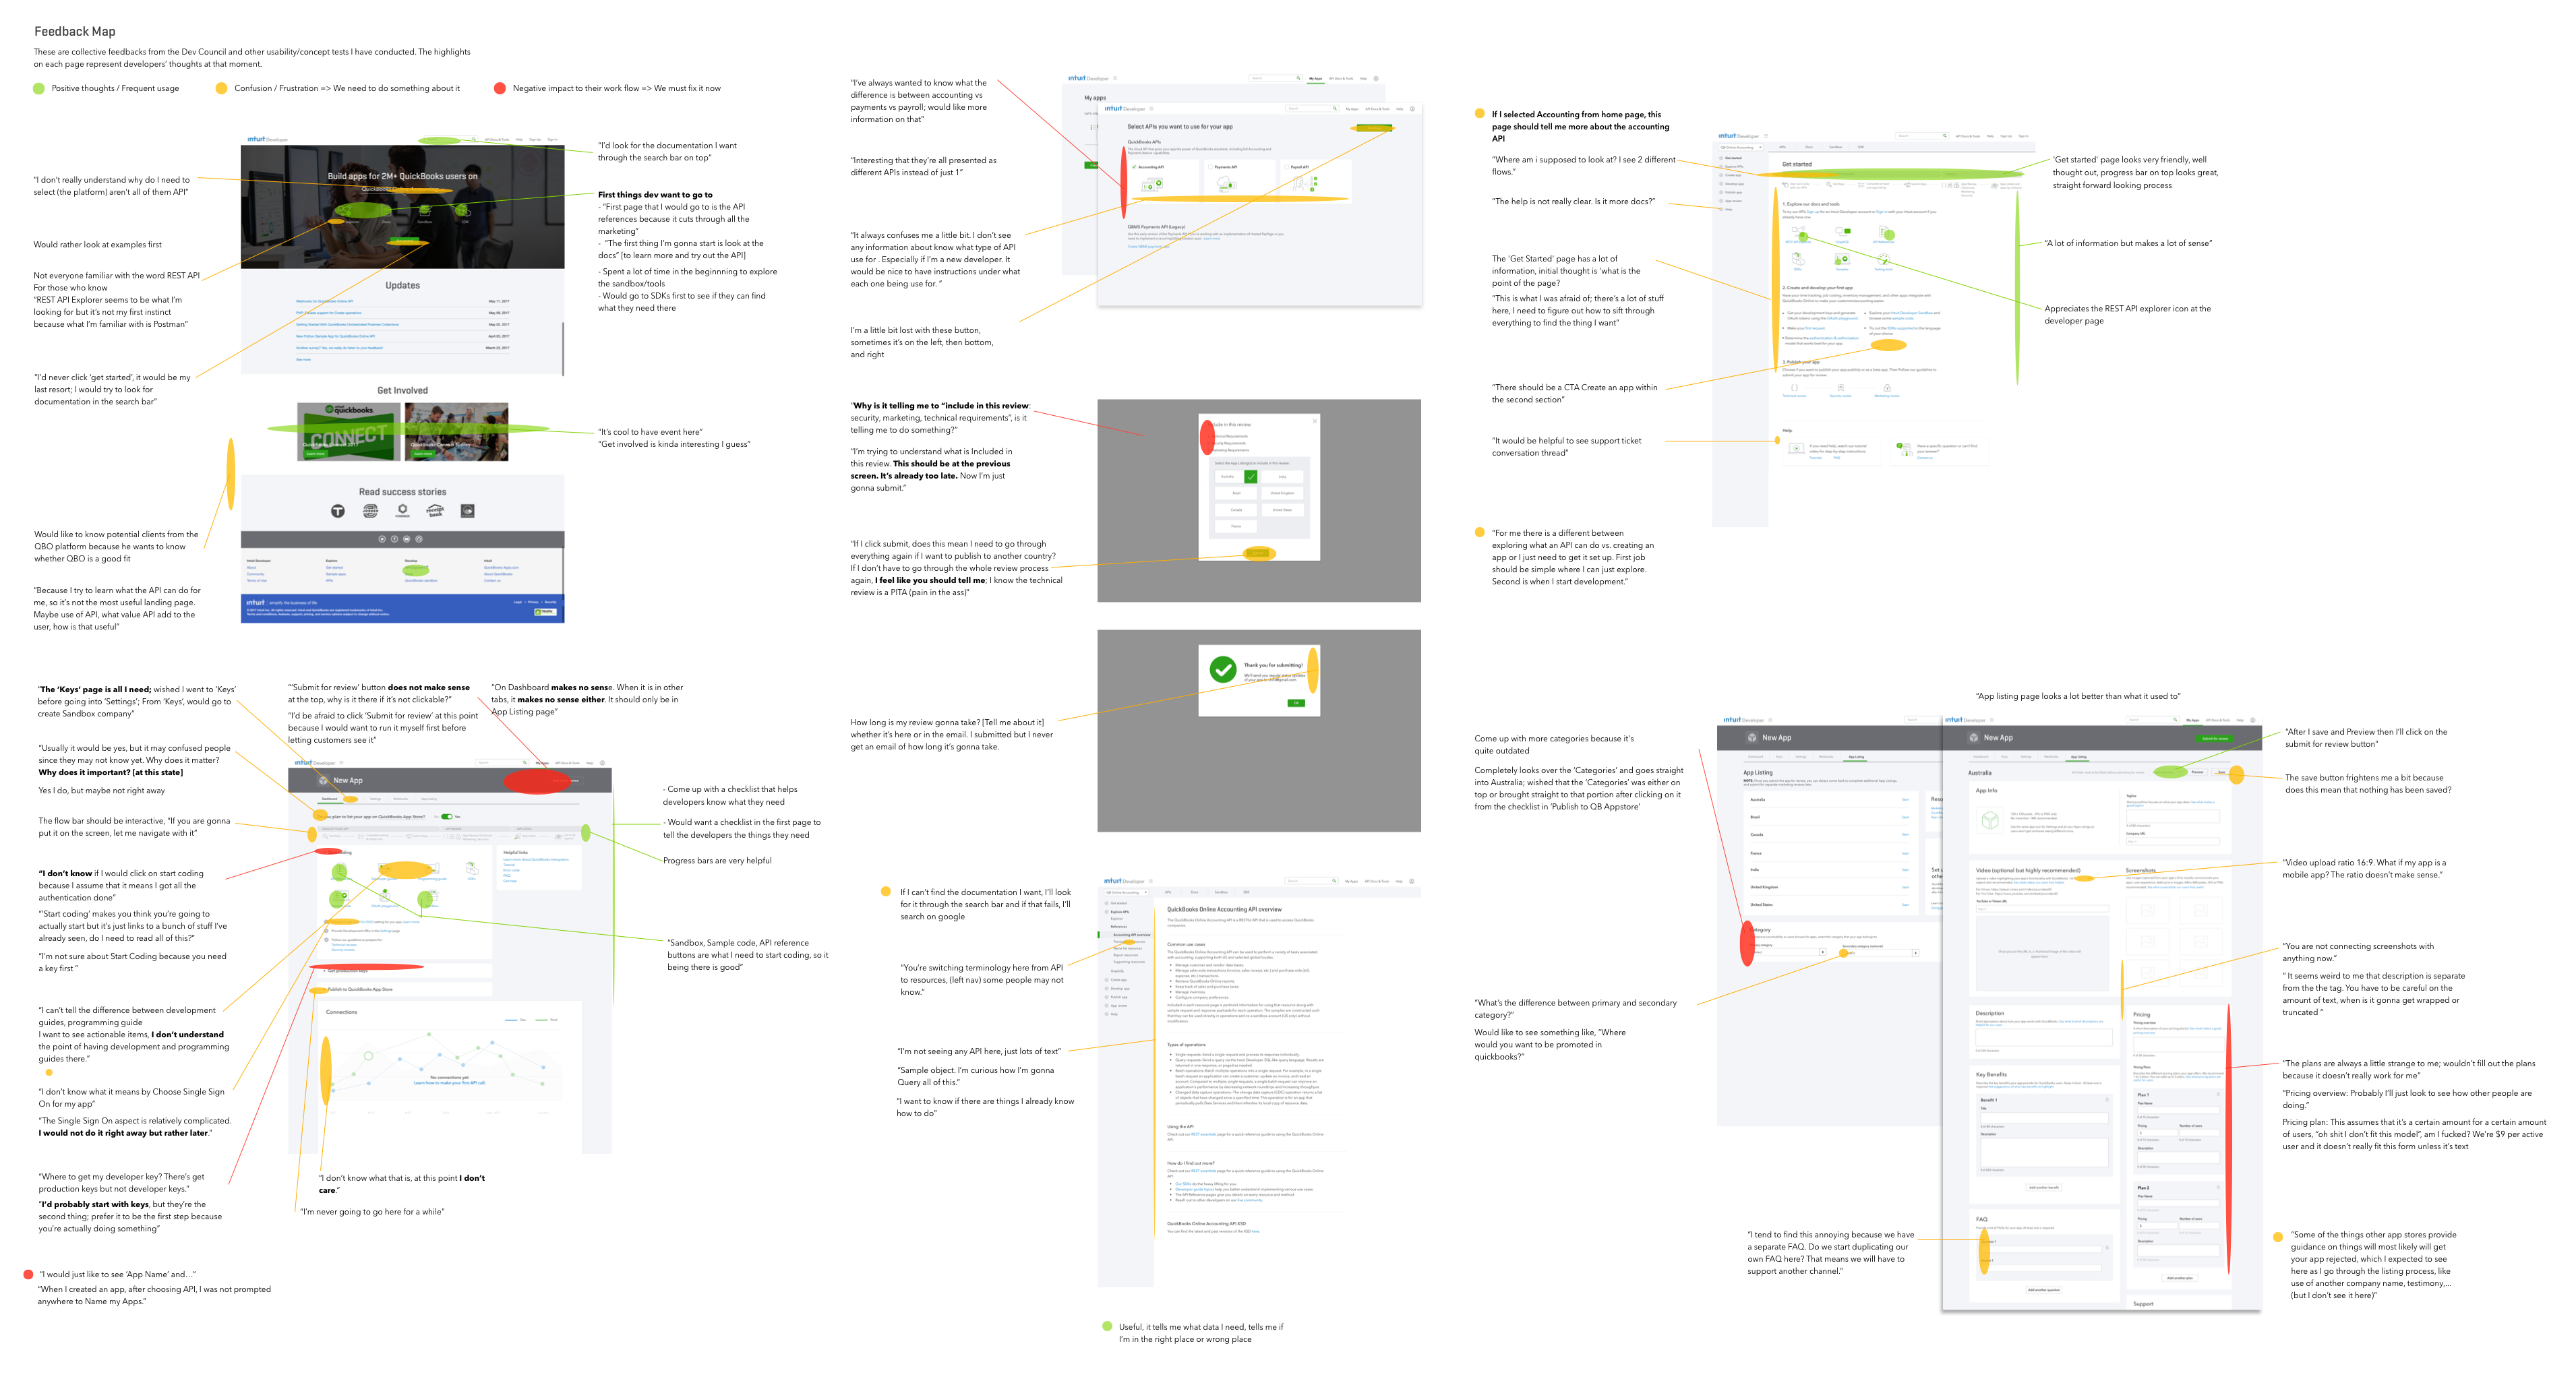 Screenshot of a whole new design flow with feedback highlighted in specific areas of the design to show good and bad parts